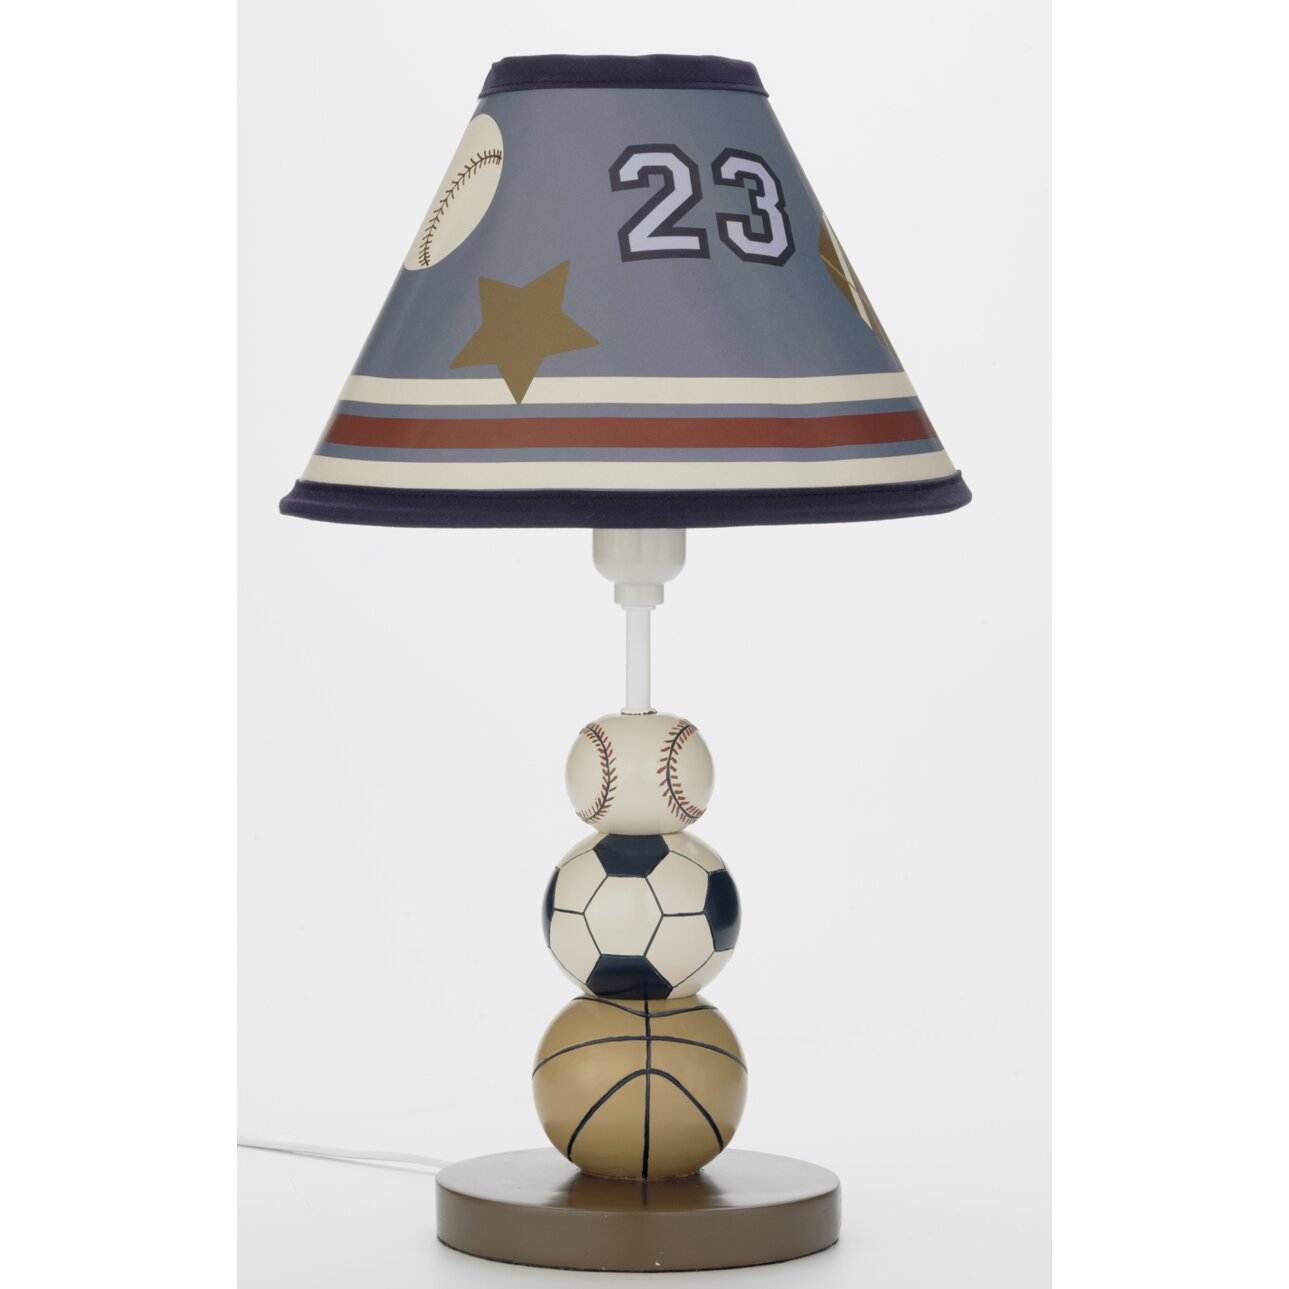 Childrens table lamp instalamp childrens table lamp geotapseo Images